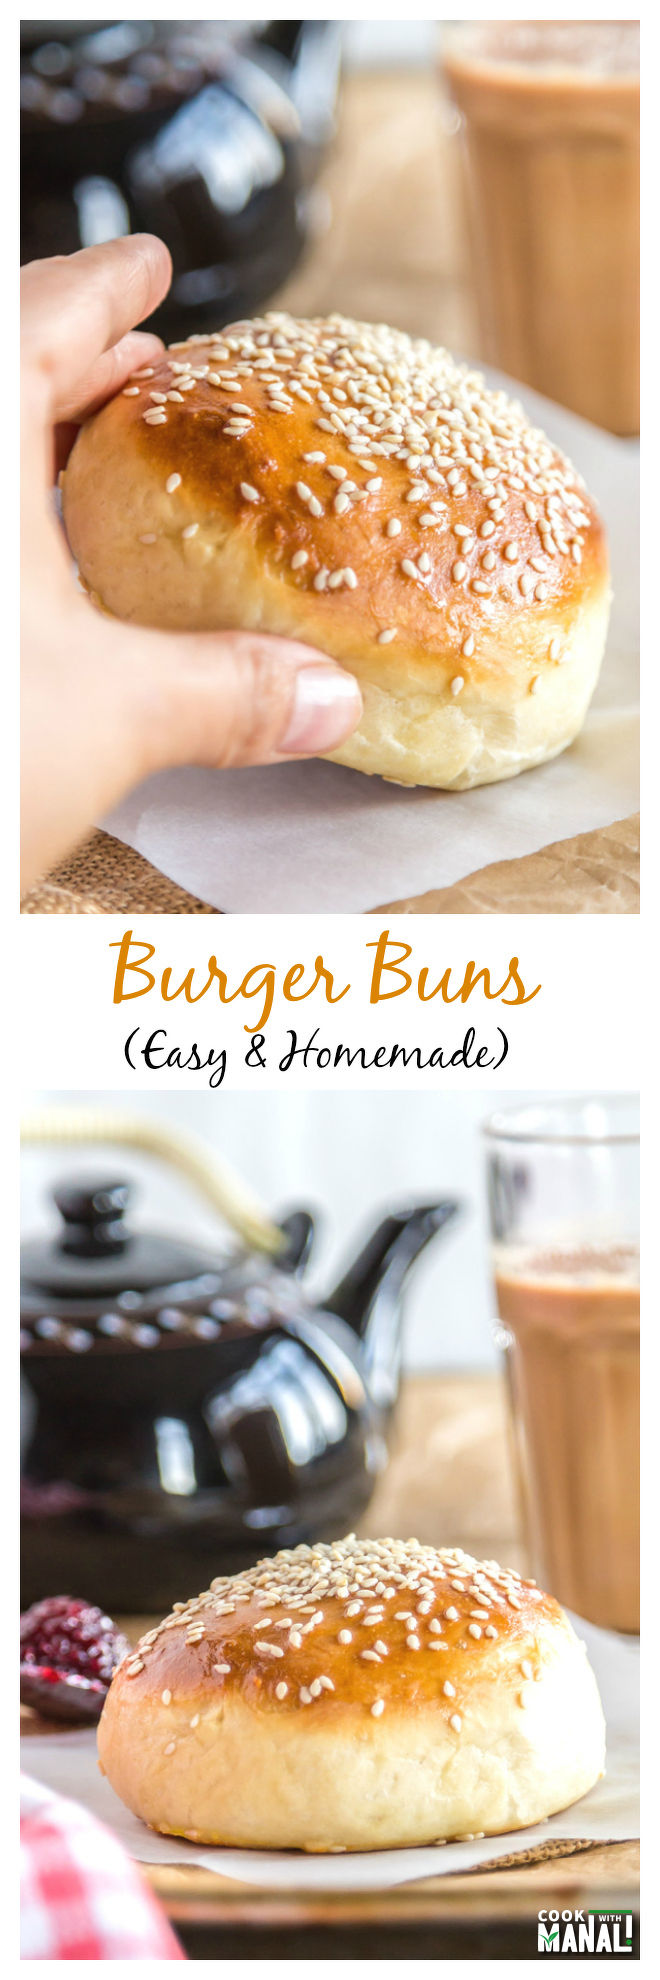 Homemade Burger Buns Collage